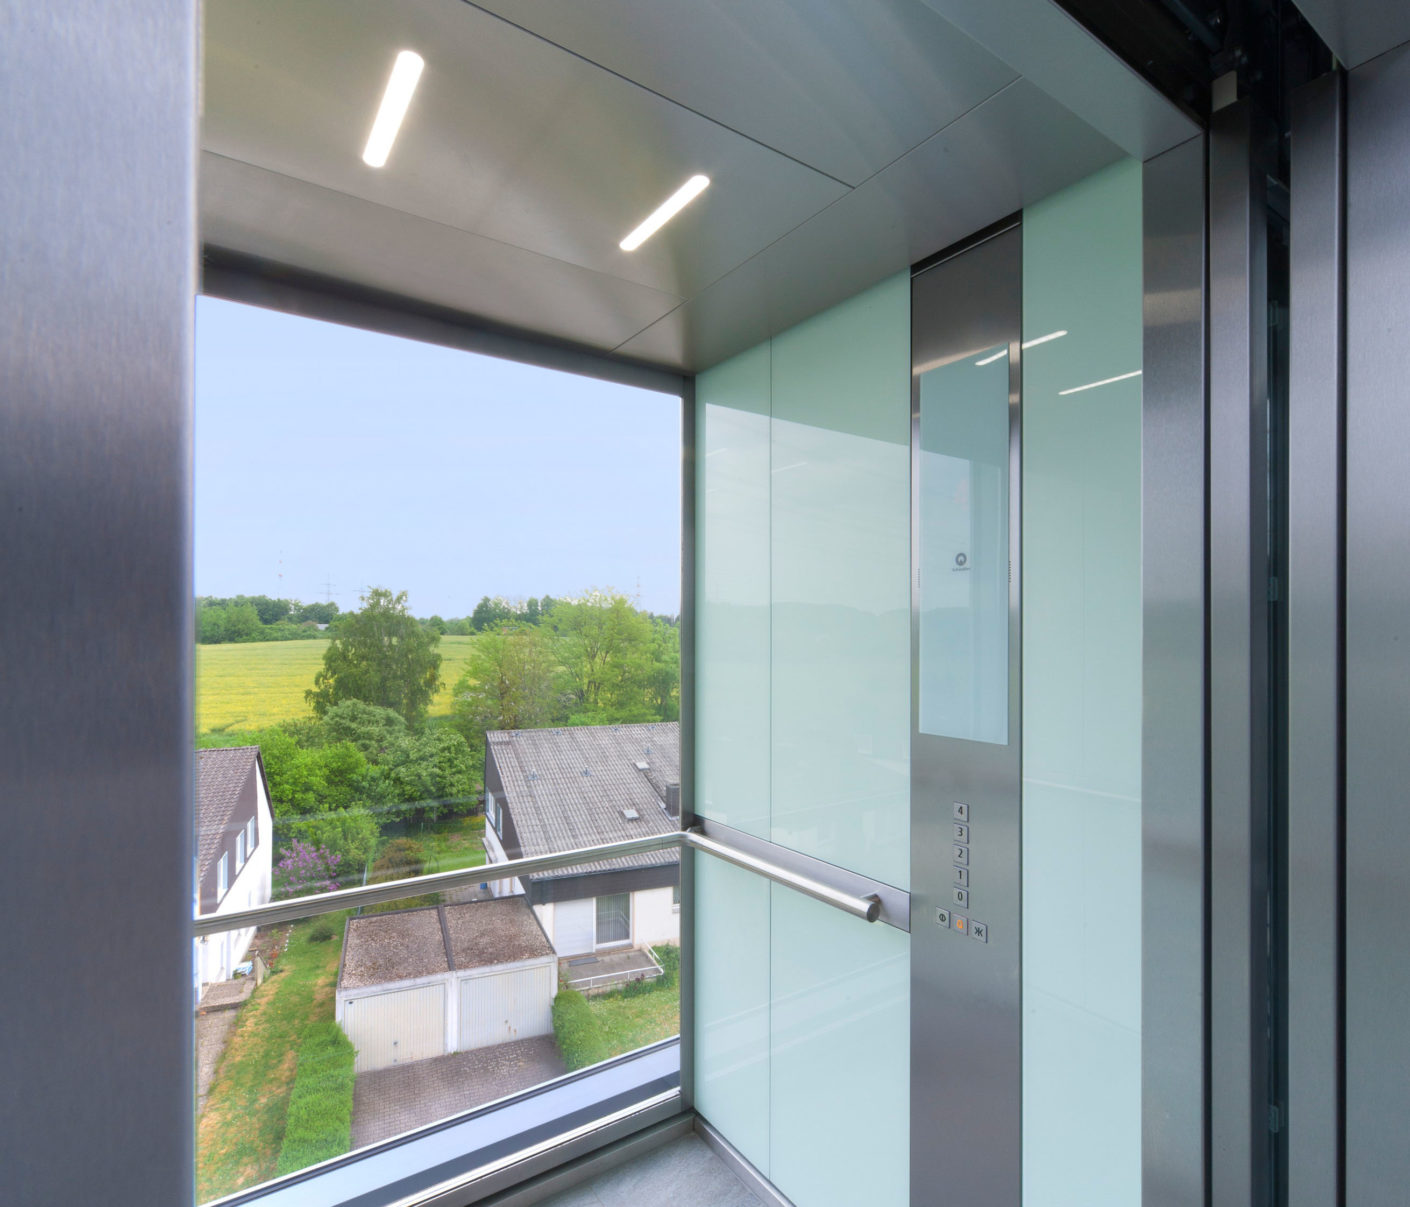 The Schindler 5500 model was installed in the building, an elevator offering energy-saving LED lighting.